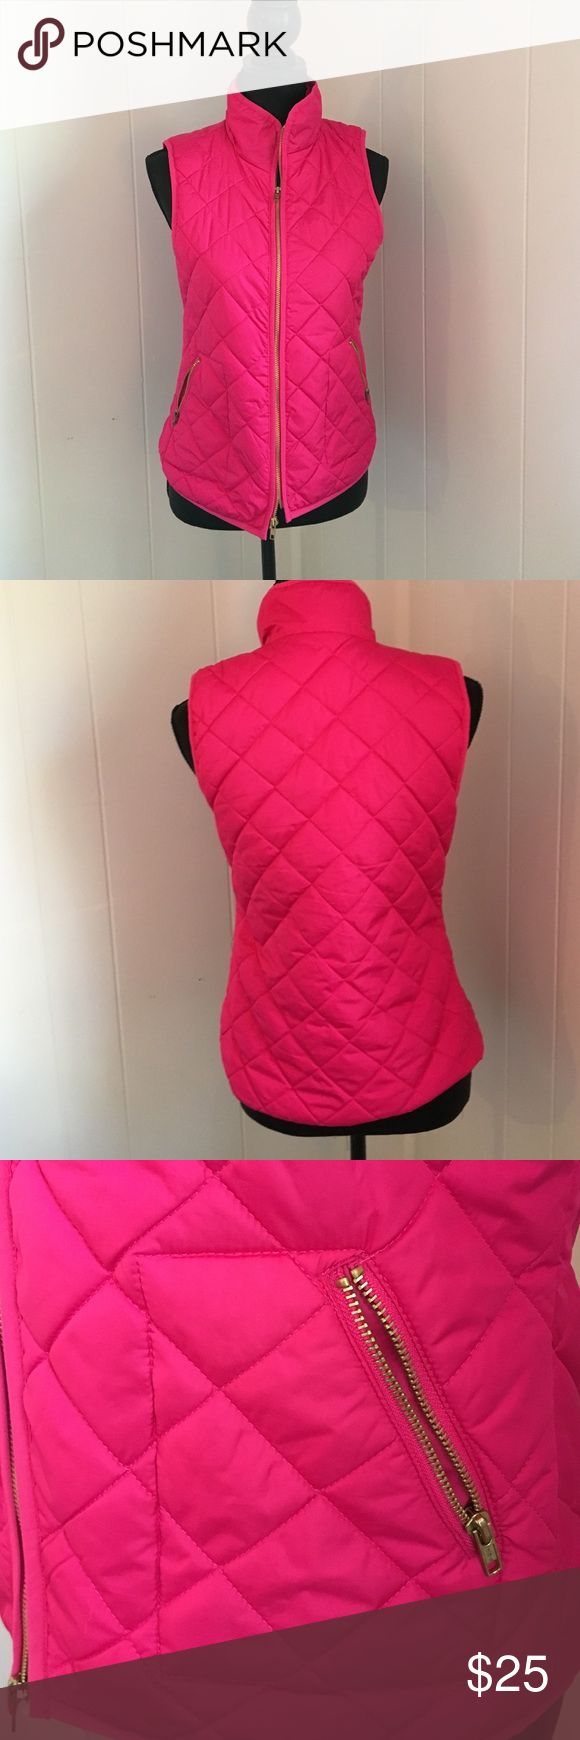 Hot Pink Old Navy Vest Perfect Condition! Only worn a hand full of times. No visible wear. Happy to bundle! Old Navy Jackets & Coats Vests